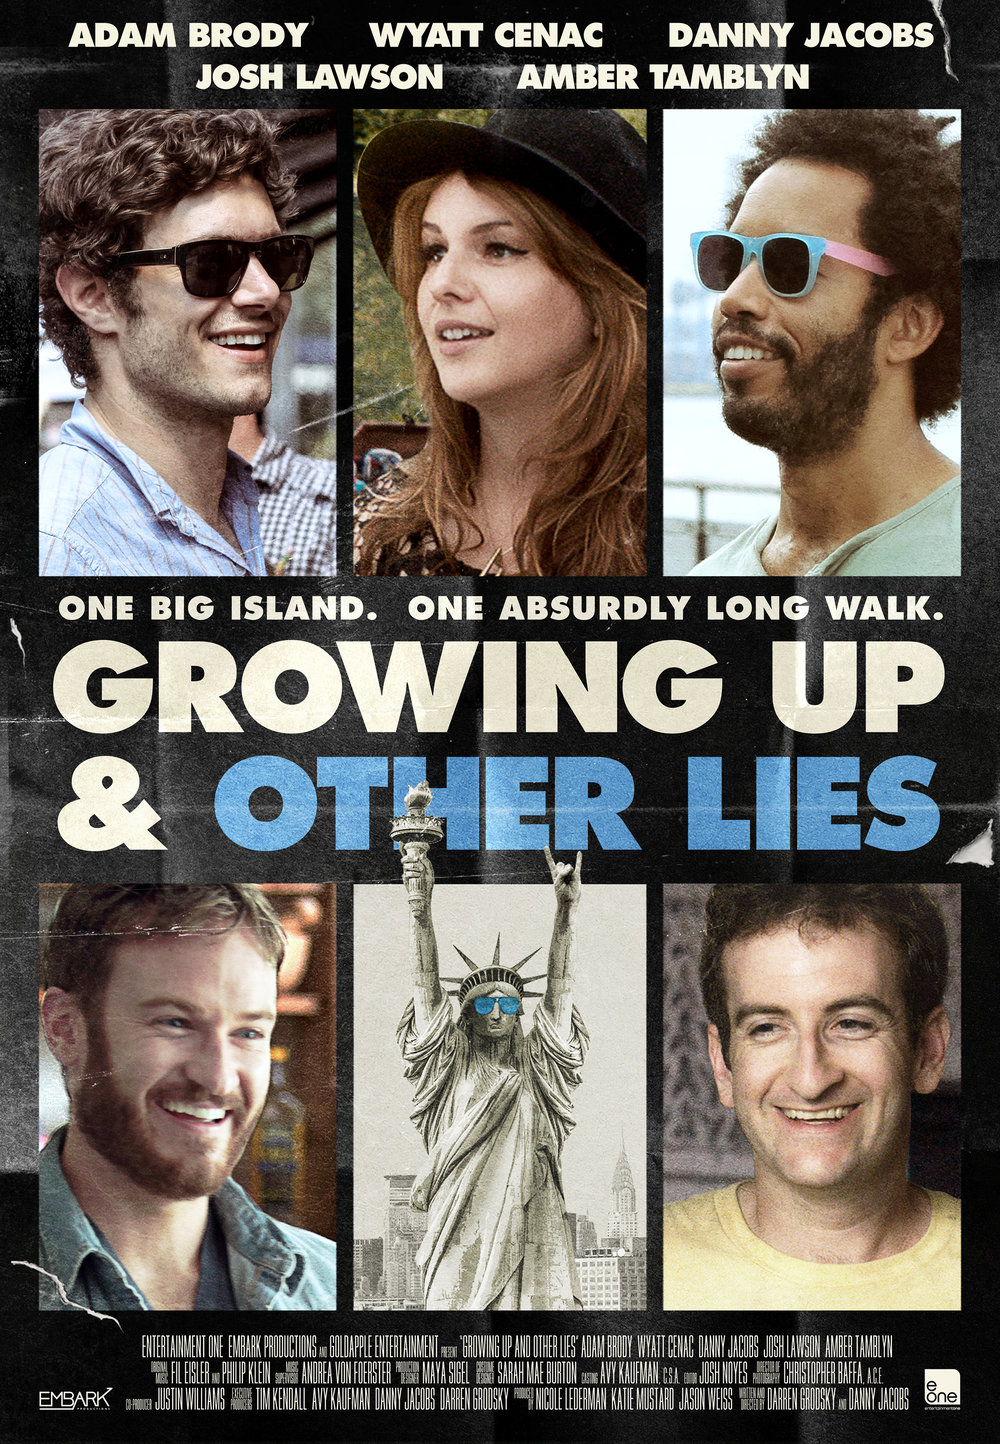 GrowingUp&OtherLies_Poster_27x39.jpg